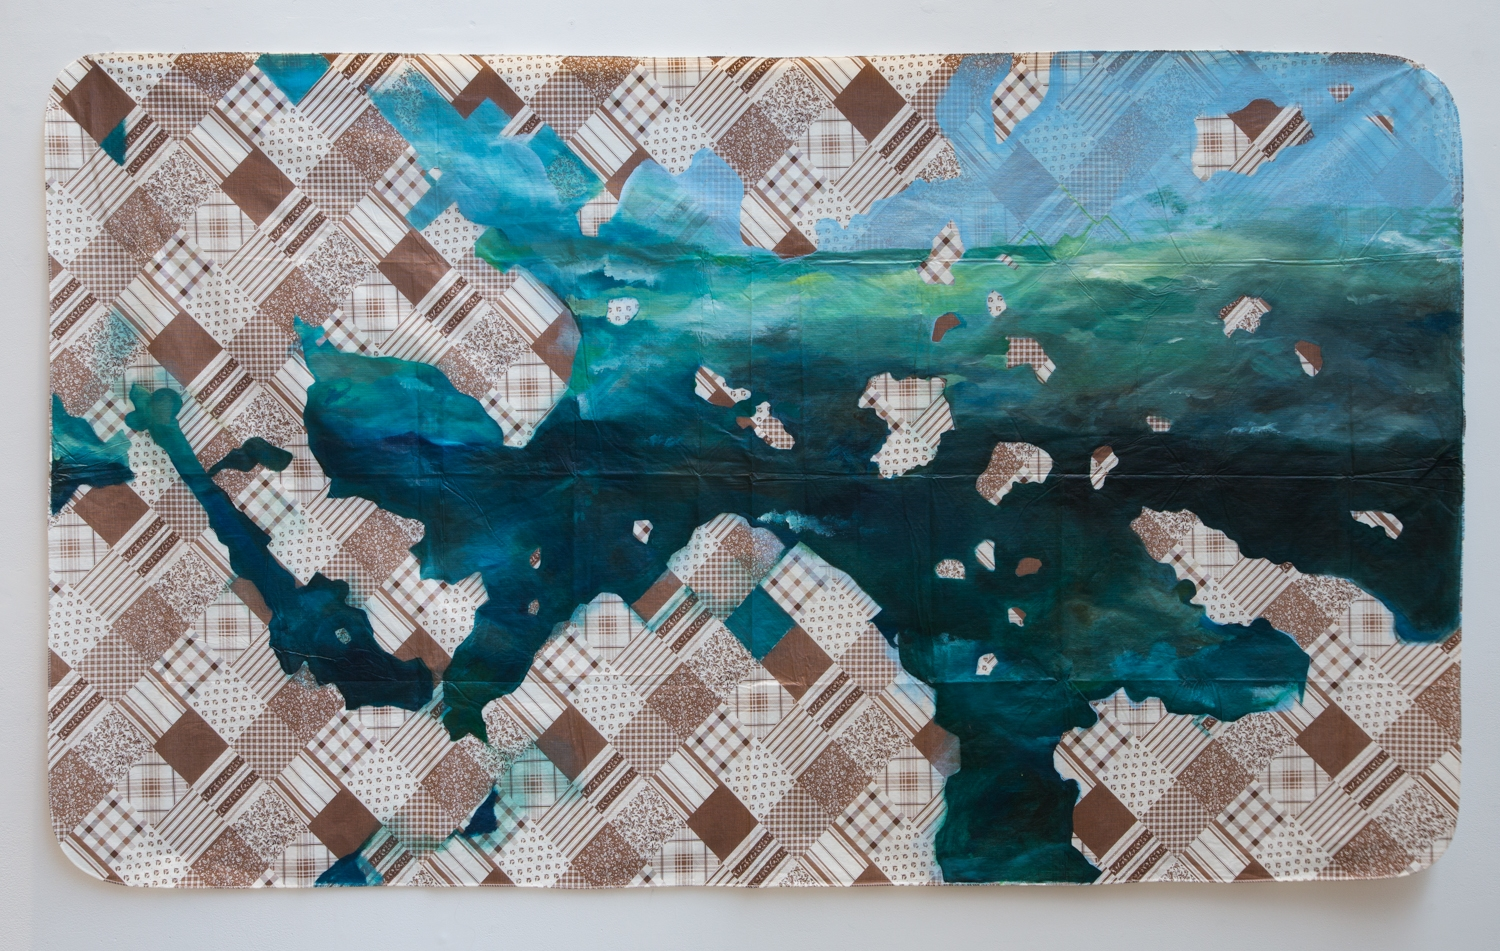 Sea with Blank Stares , 2013, oil on plastic tablecloth, 52 x 90 inches